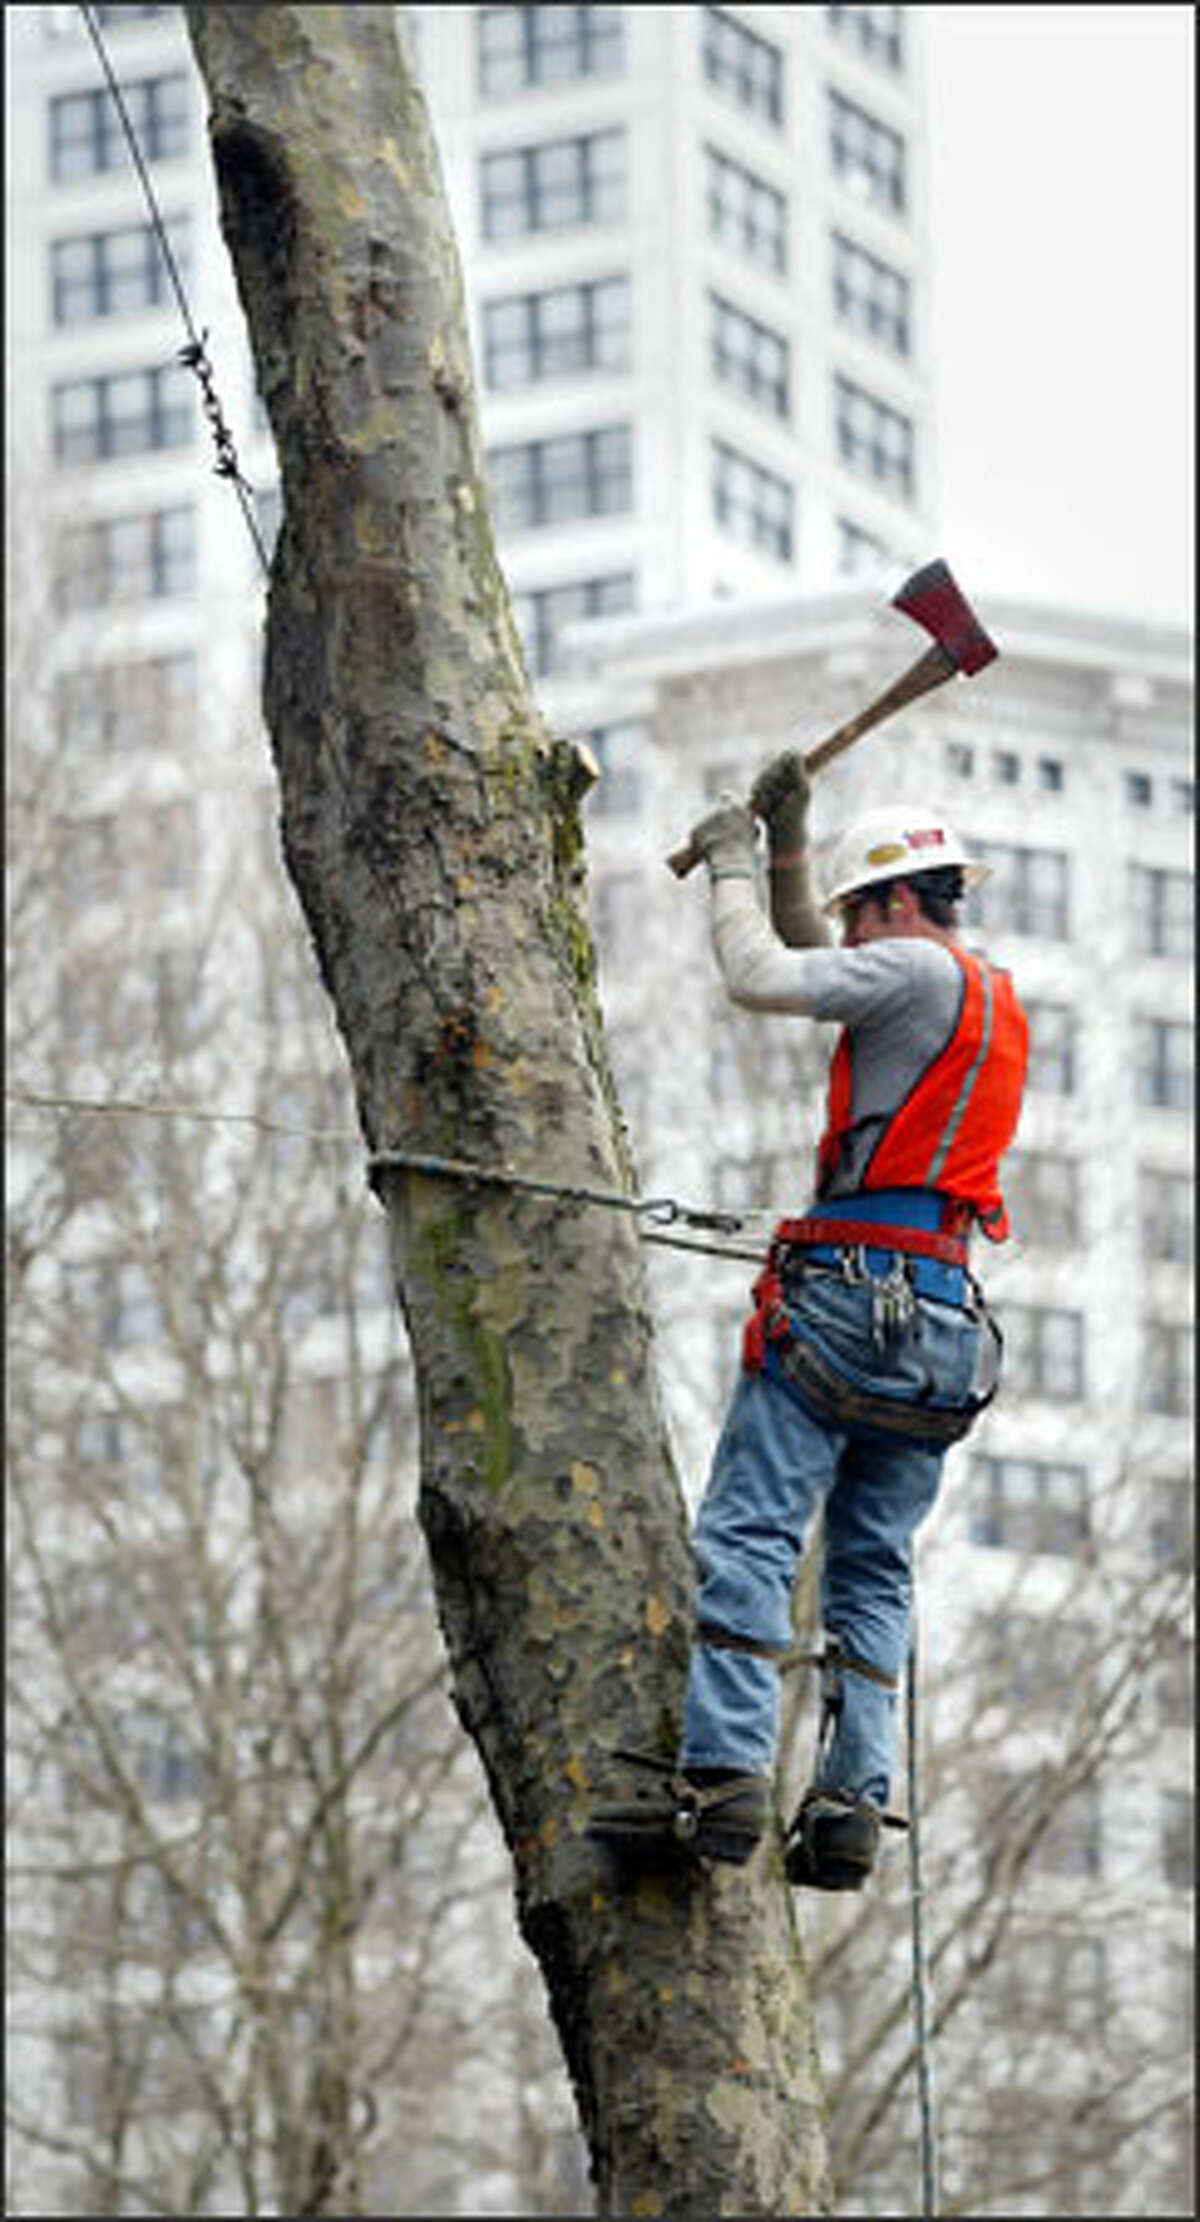 With Smith Tower as a backdrop, a logger chops limbs from a tree Monday in Occidental Park. The city felled 17 trees as part of a project to clean up and revitalize the Pioneer Square park.